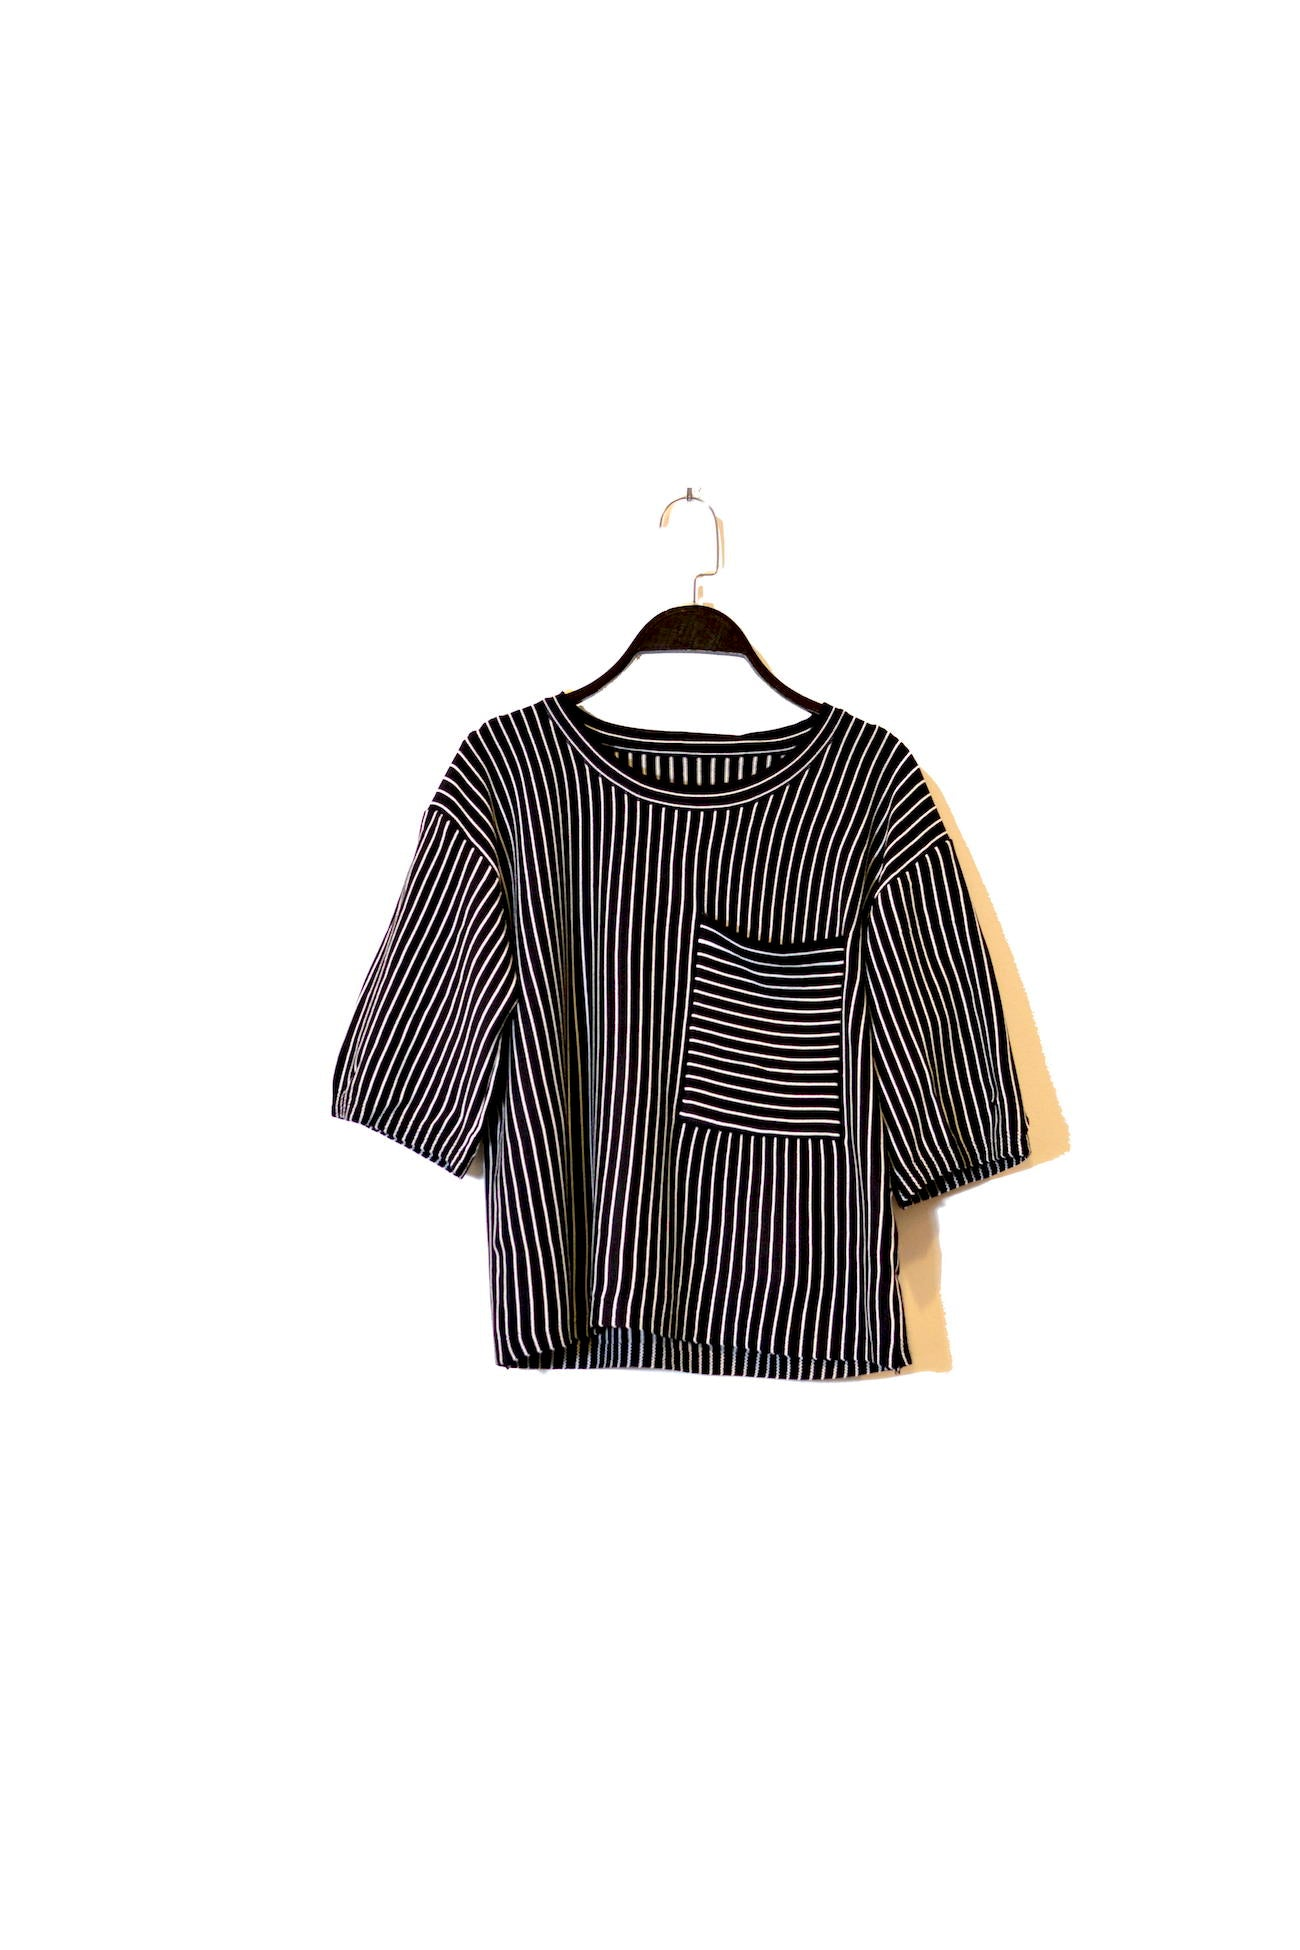 Black Shoulder-Length Sleeve Striped Shirt with round neckline and front chest Pocket